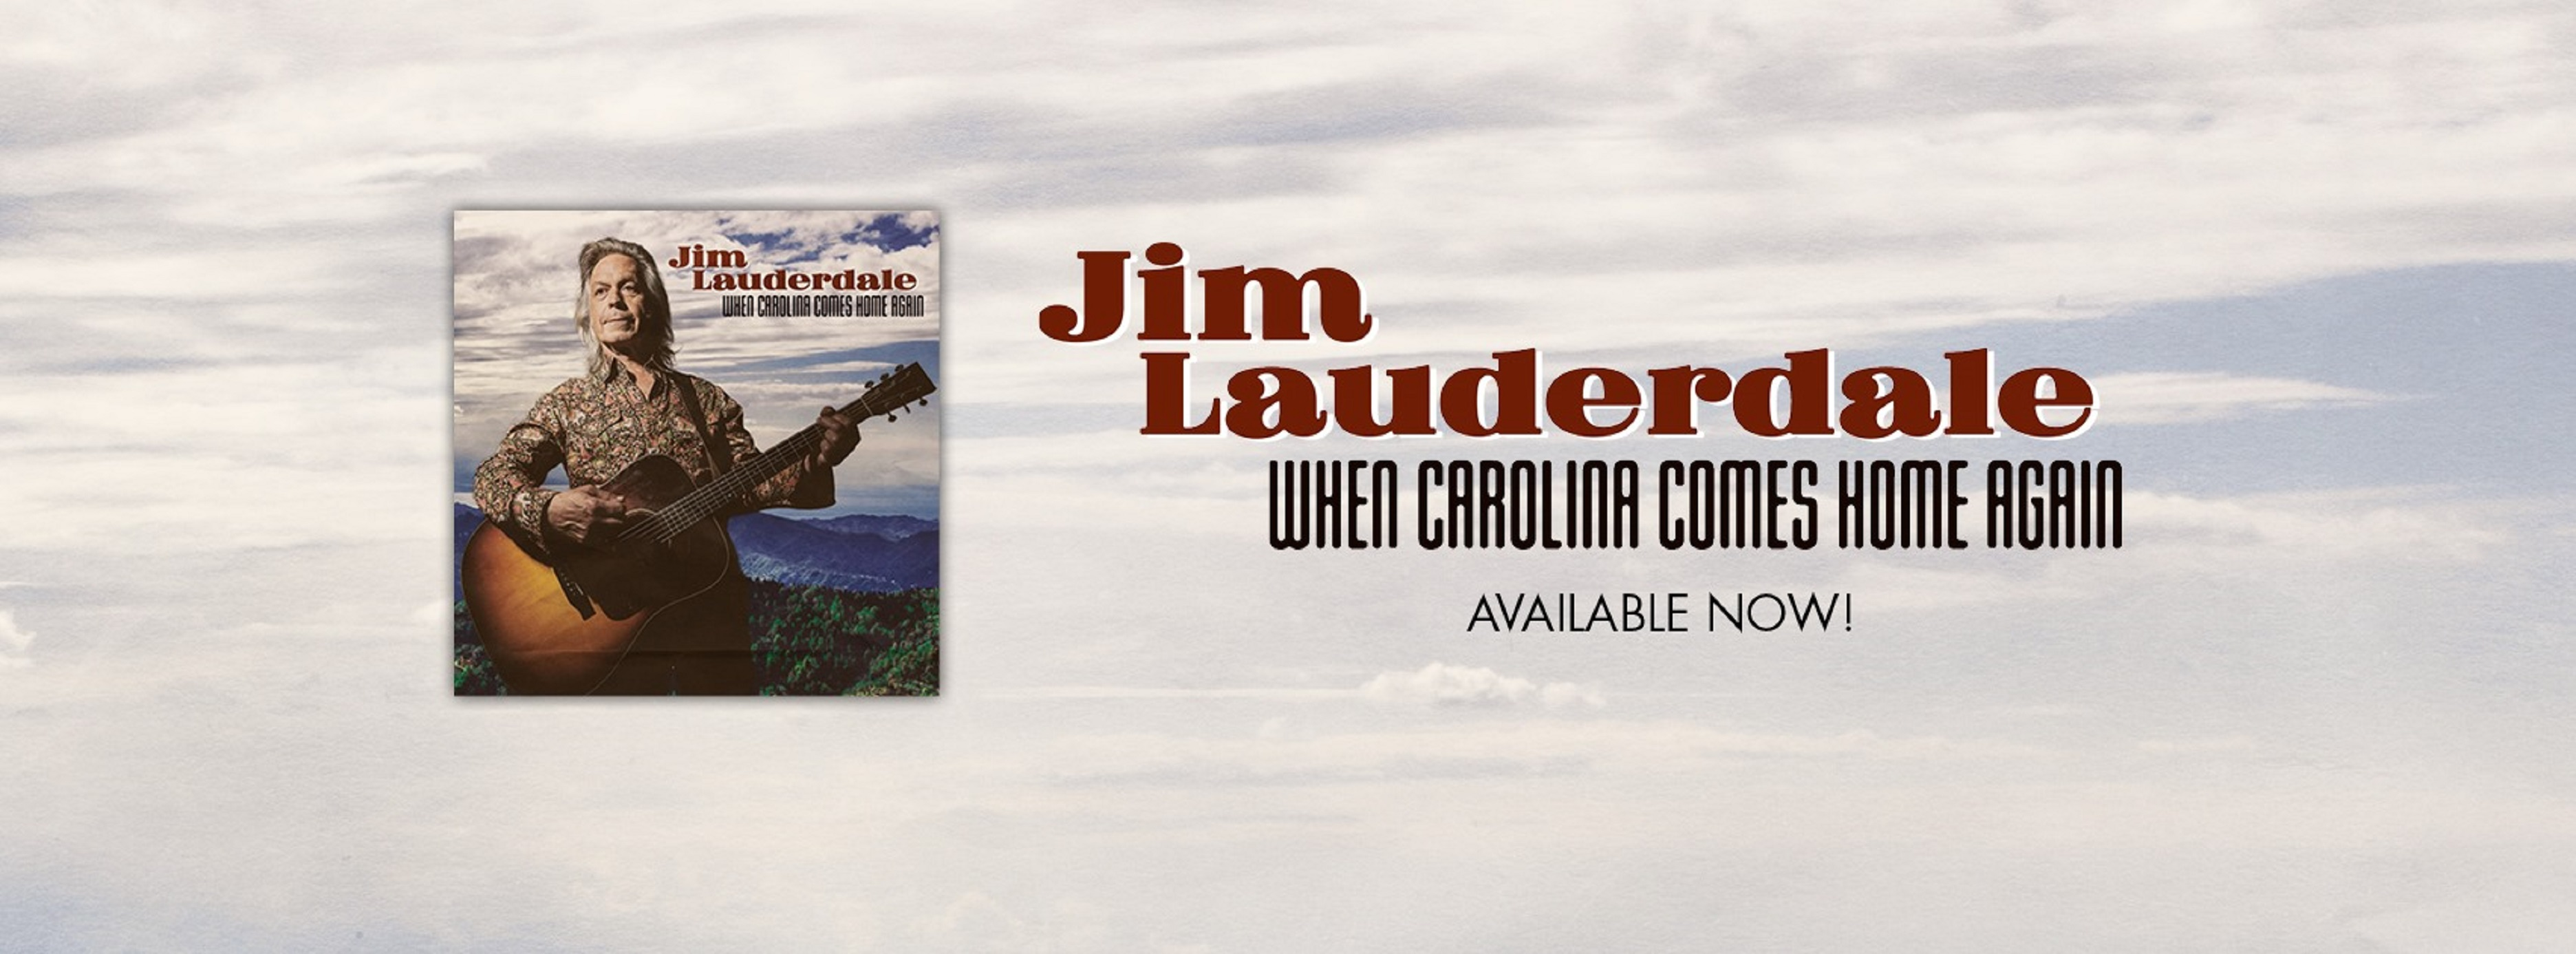 Jim Lauderdale's 'When Carolina Comes Home Again' Out Now